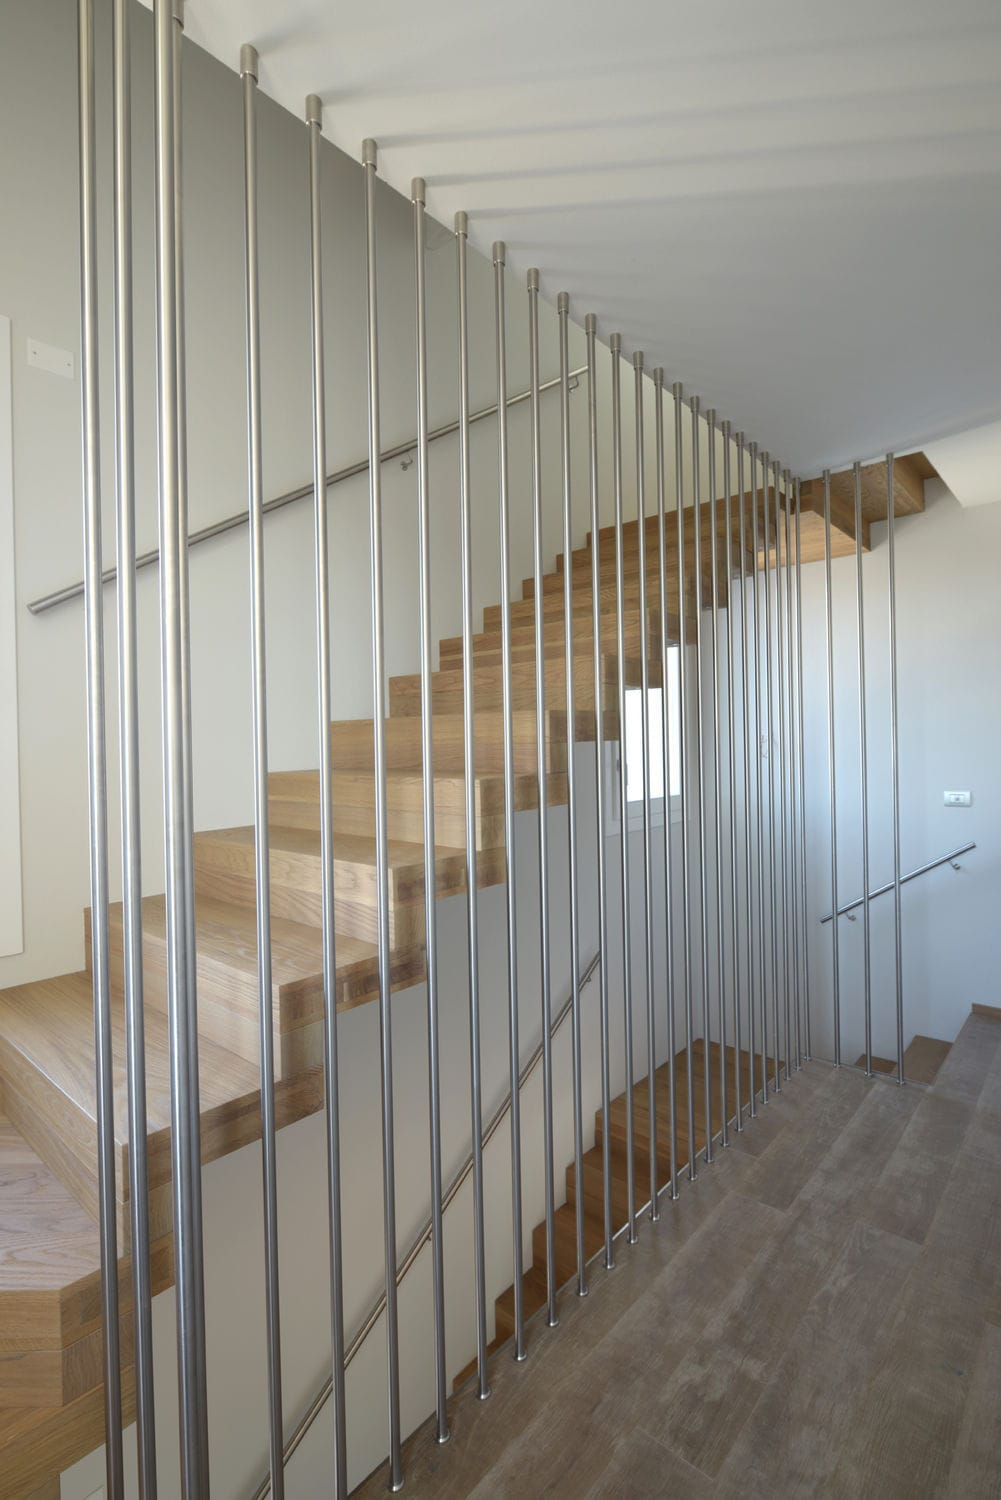 Garde Corps Cage Escalier stainless steel railing / with bars / indoor - cage - tecnoscale